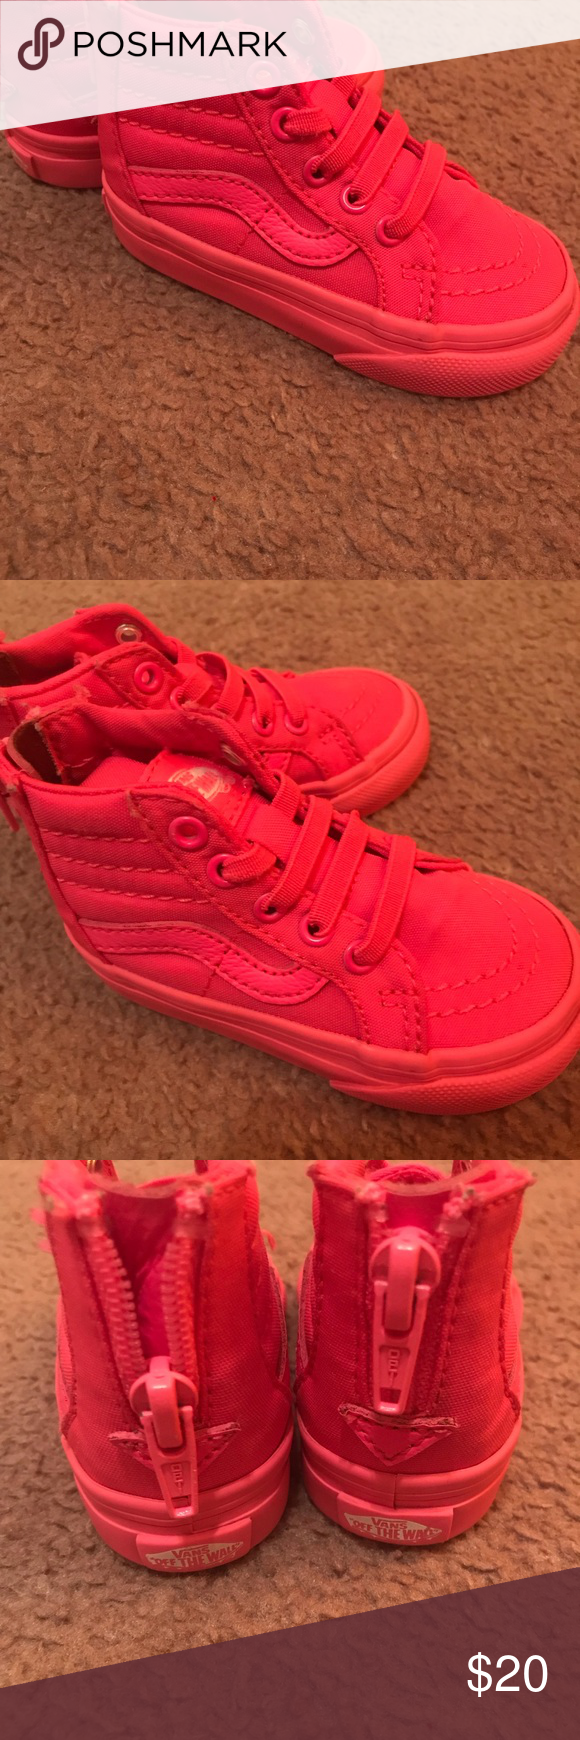 f6db707ca5 Spotted while shopping on Poshmark  Hot Pink Vans size 4!  poshmark  fashion